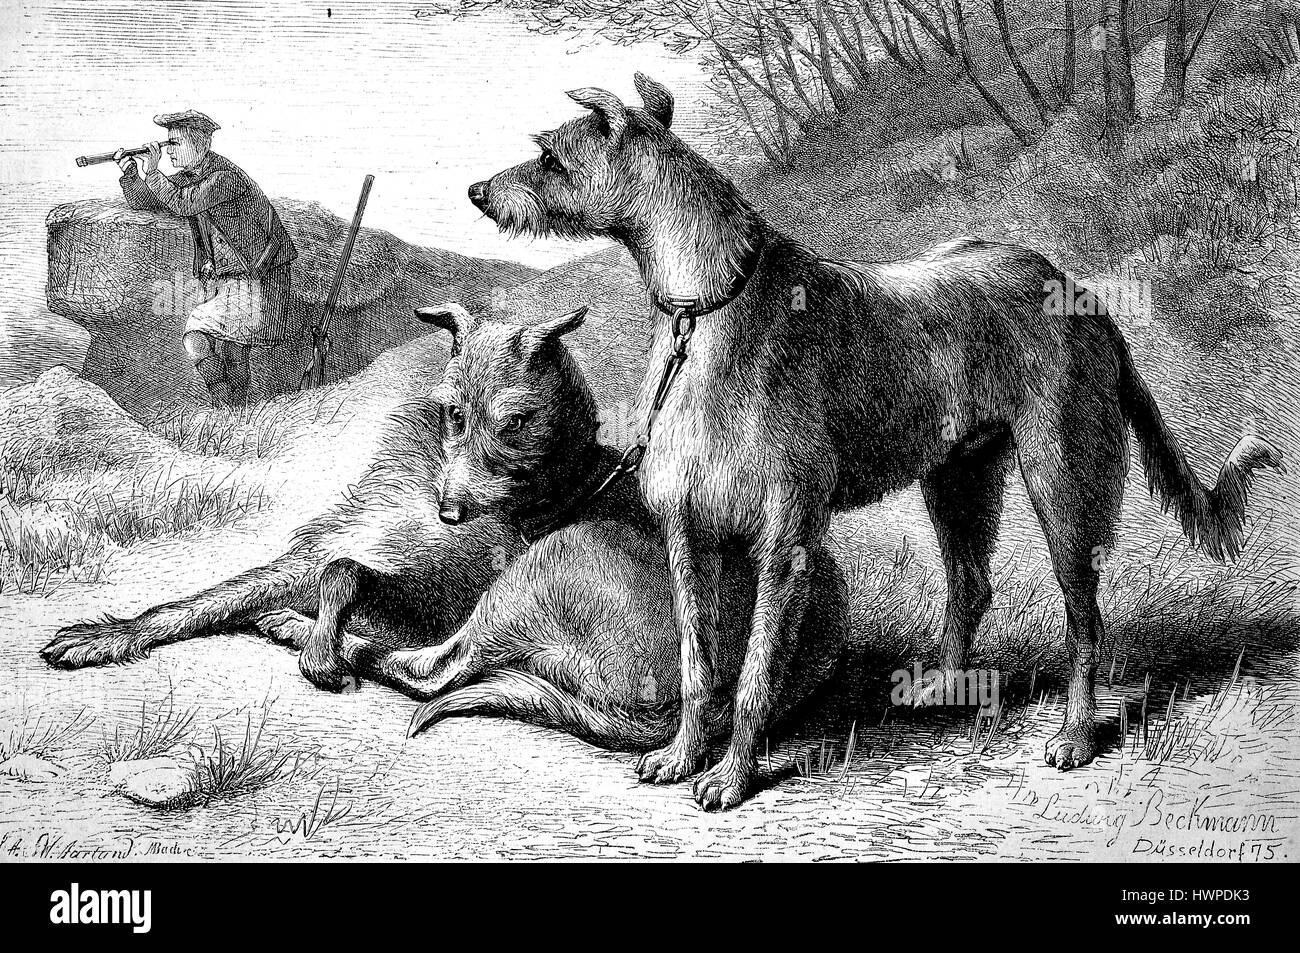 Scottish Deerhound, Greyhound dogs, as a hunting dog, Reproduction of an original woodcut from the year 1882, digital - Stock Image